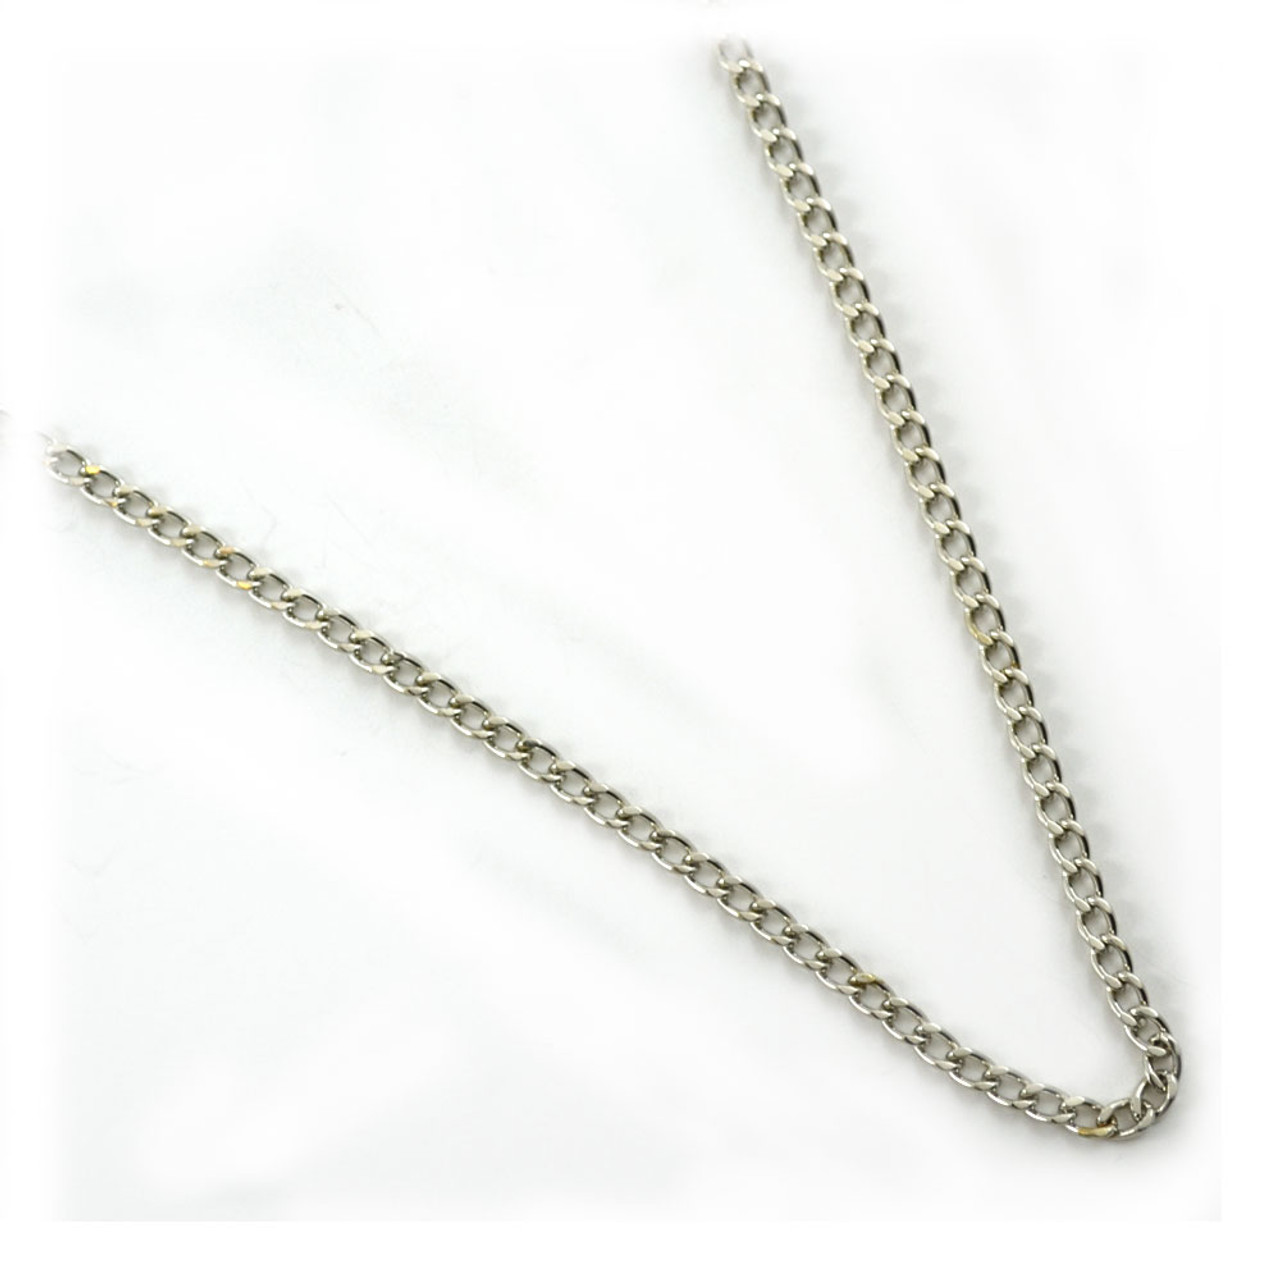 30 Inch Chain Stainless